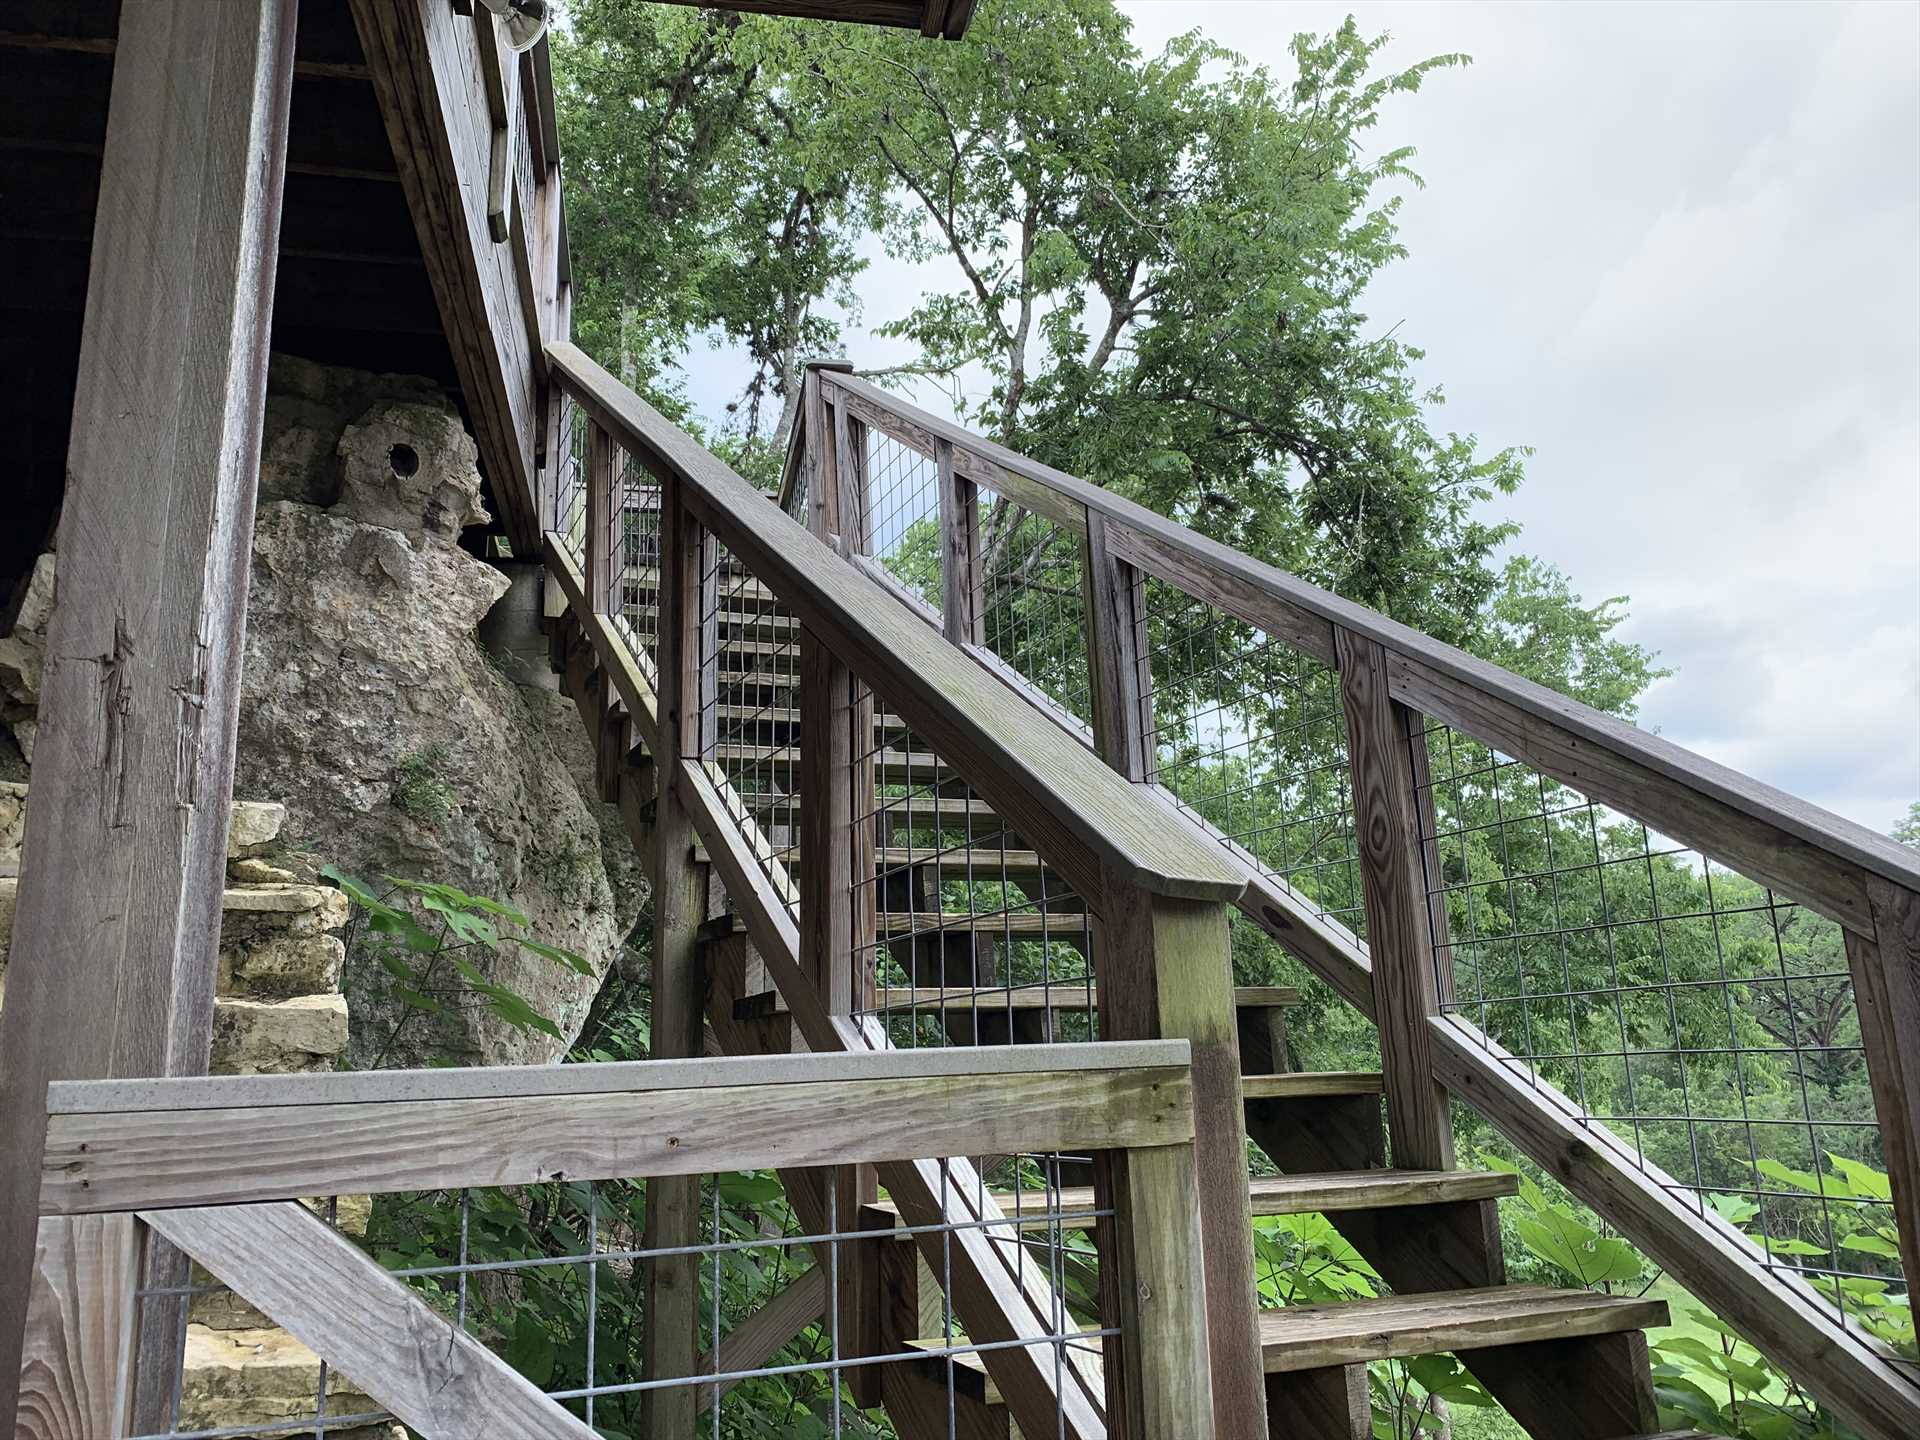 No matter where you're headed here, take a moment to admire the inspiring sights of the surrounding Hill Country.